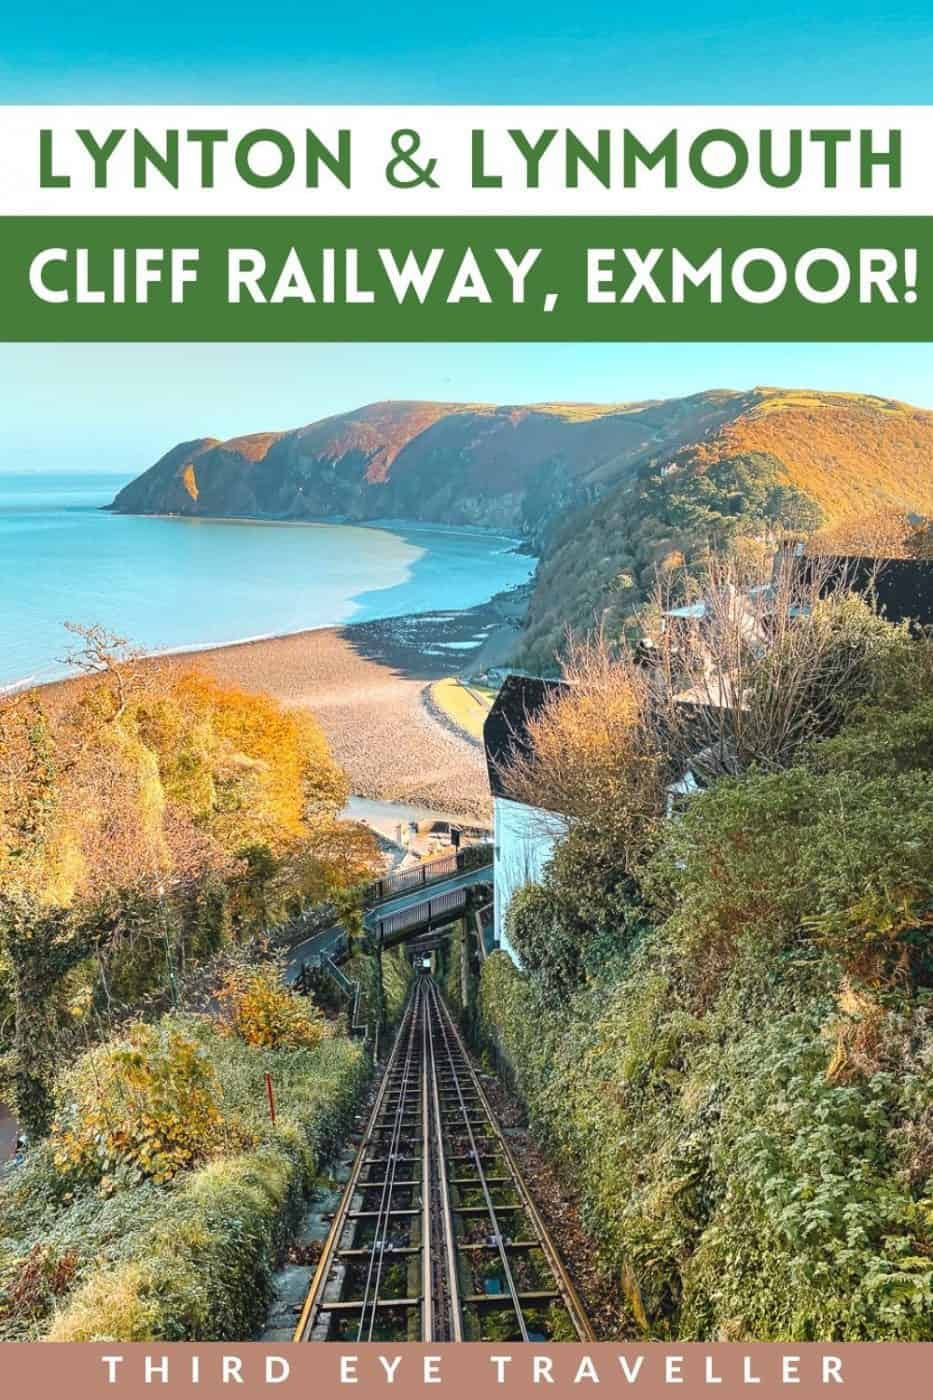 Lynton and Lynmouth Cliff Railway Exmoor National Park